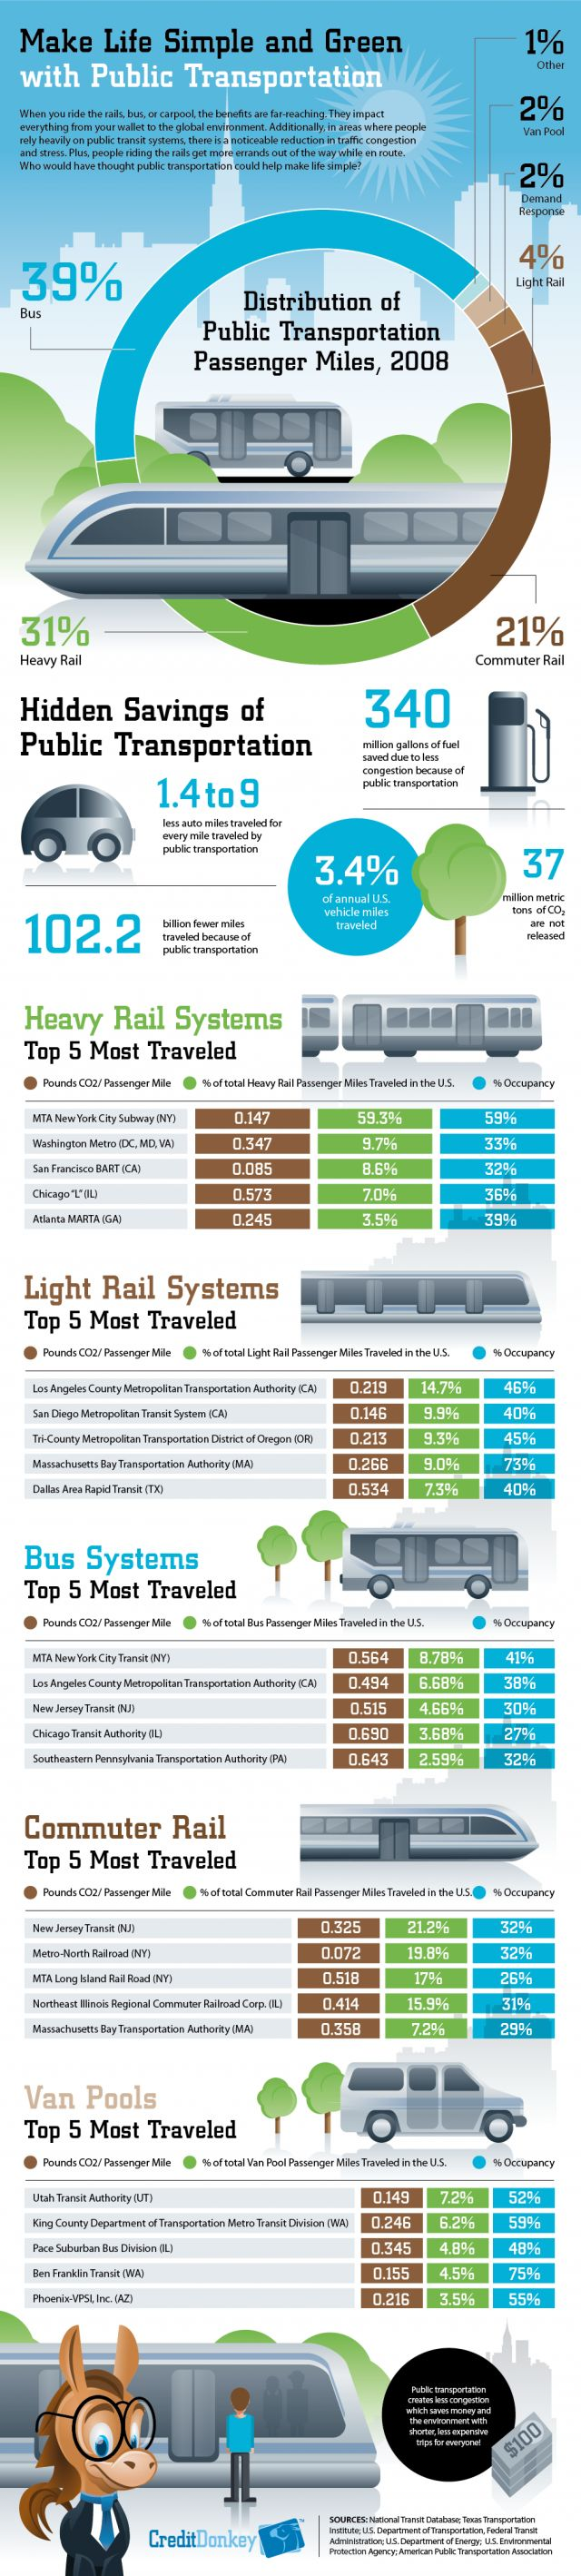 Saving Money Through Public Transport. Interesting facts from the US...would love to see this for other countries, esp. Australia